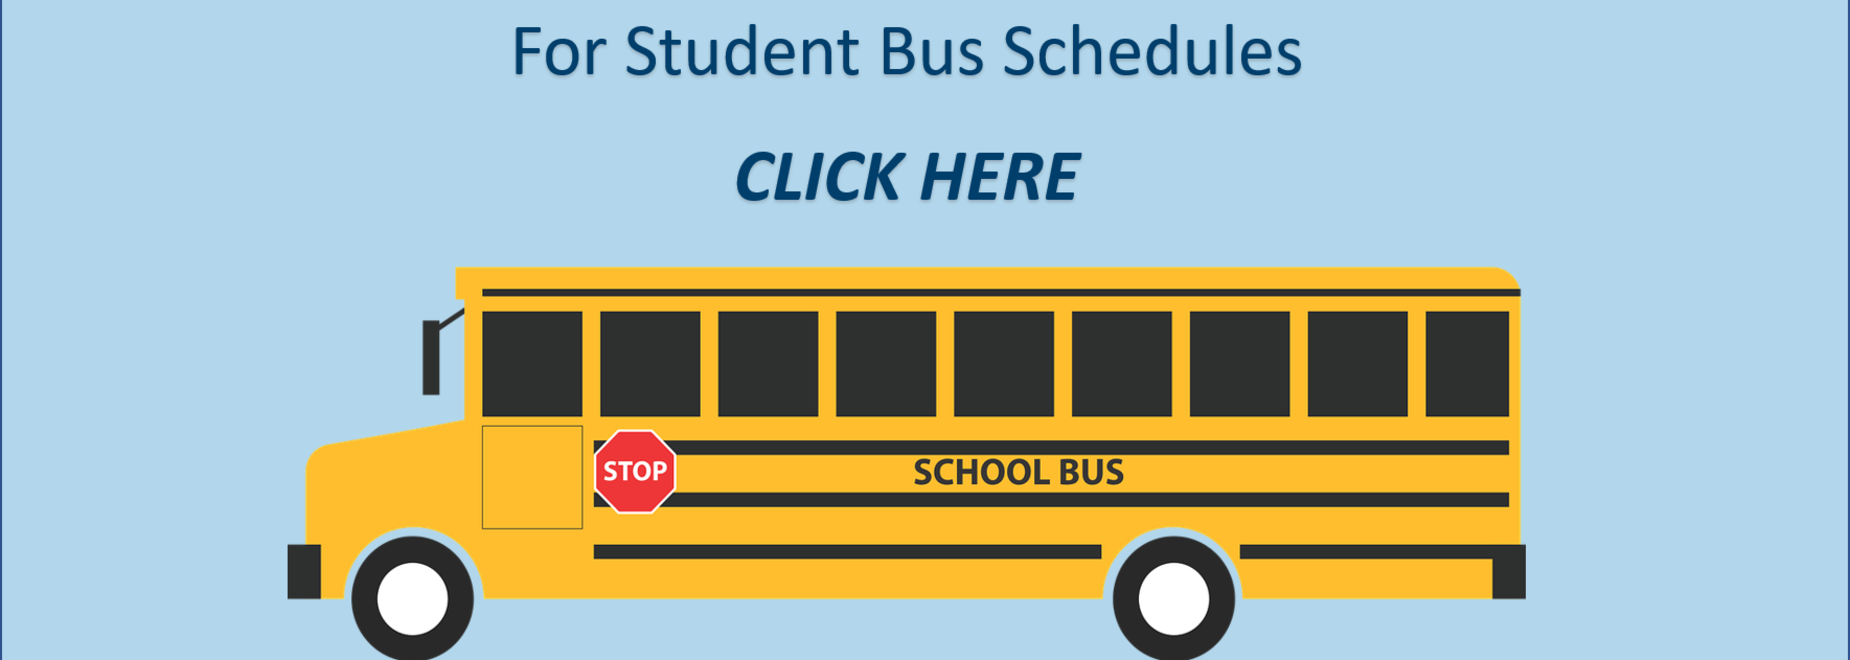 For Student Bus Schedules